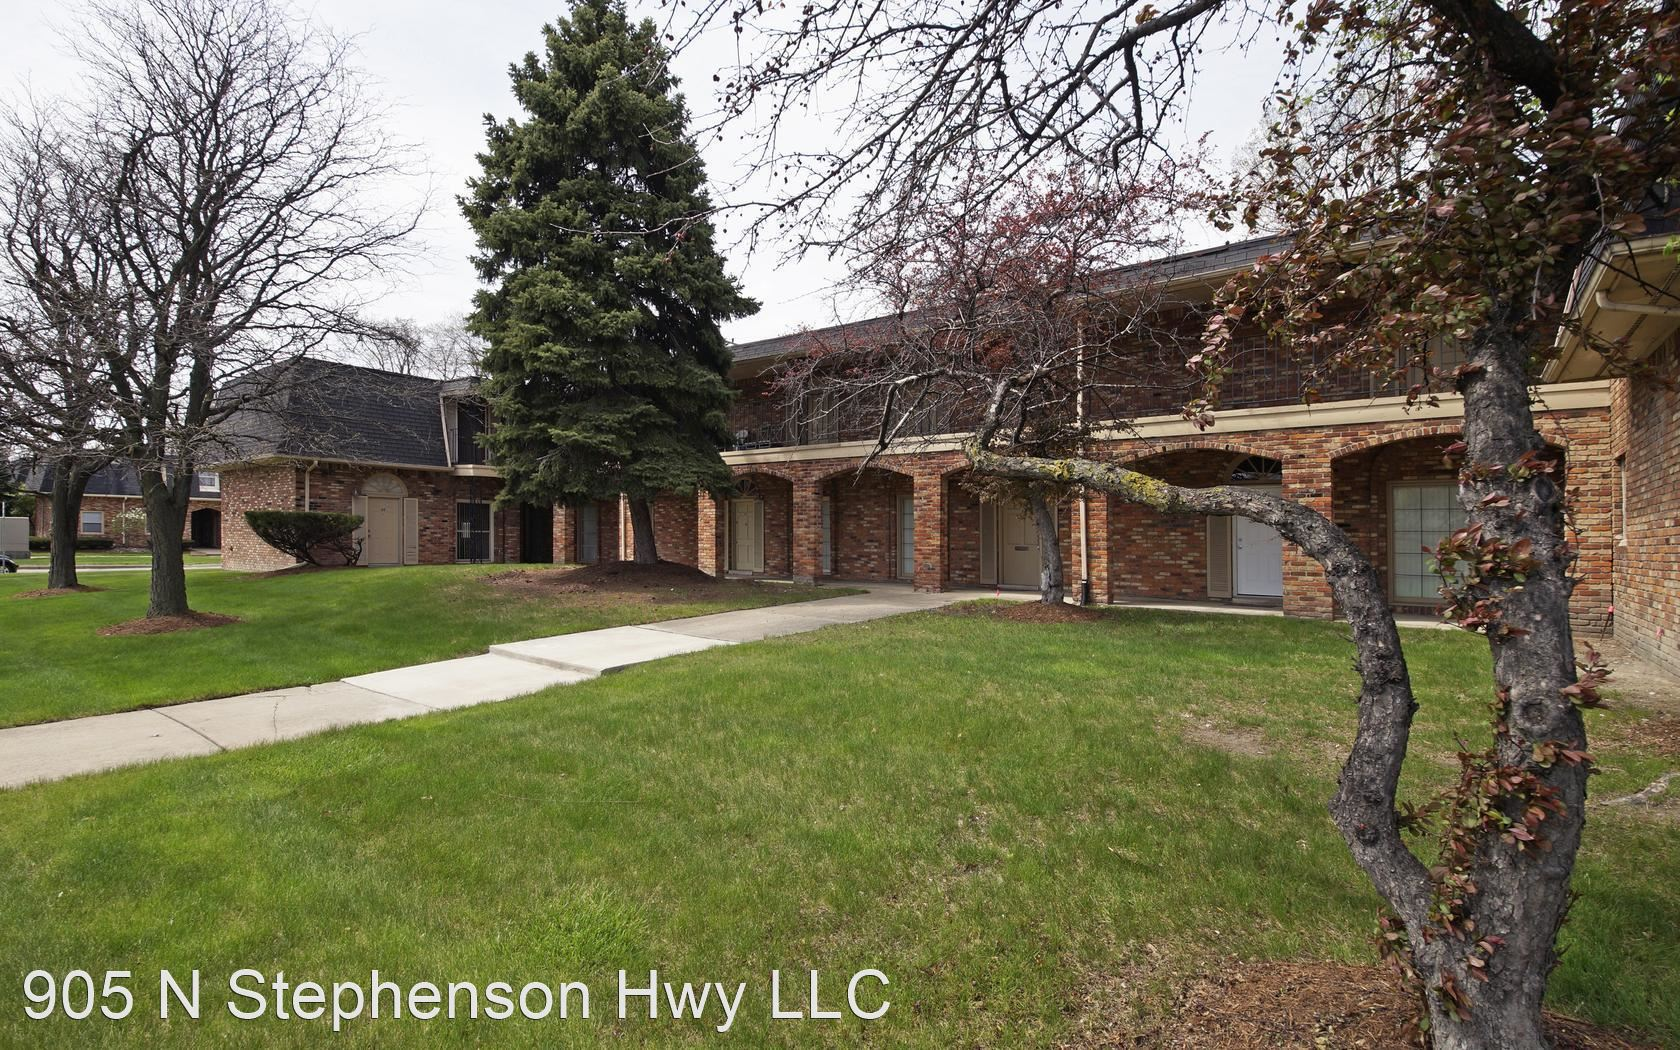 Apartment for Rent in Royal Oak